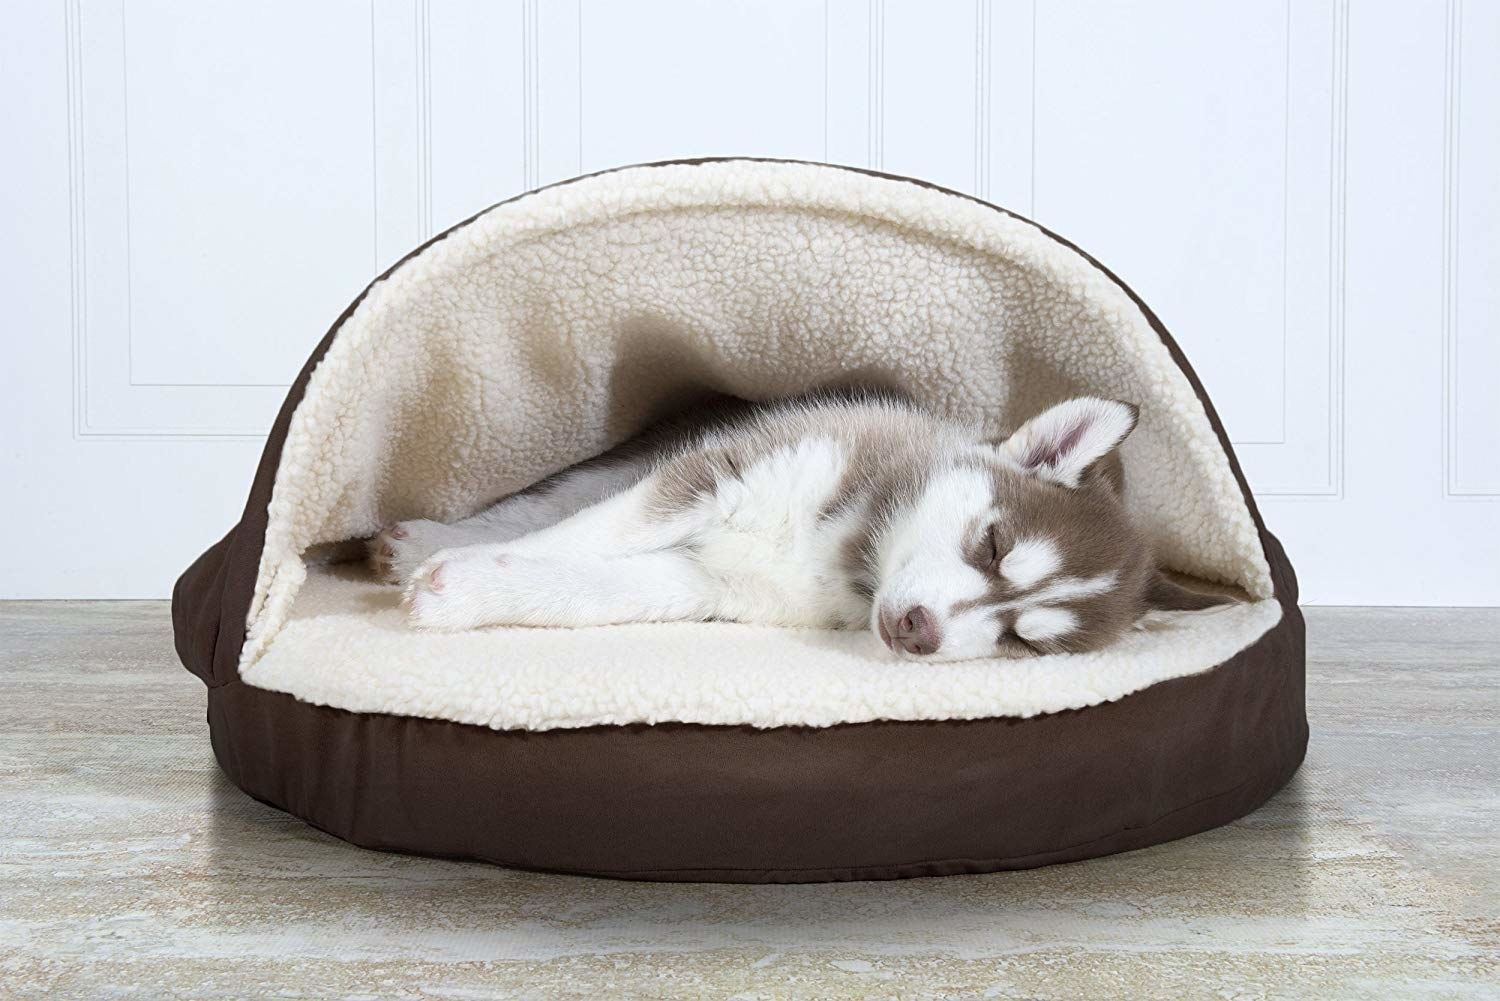 25 Products For Anyone Who Takes Sleeping Very Seriously